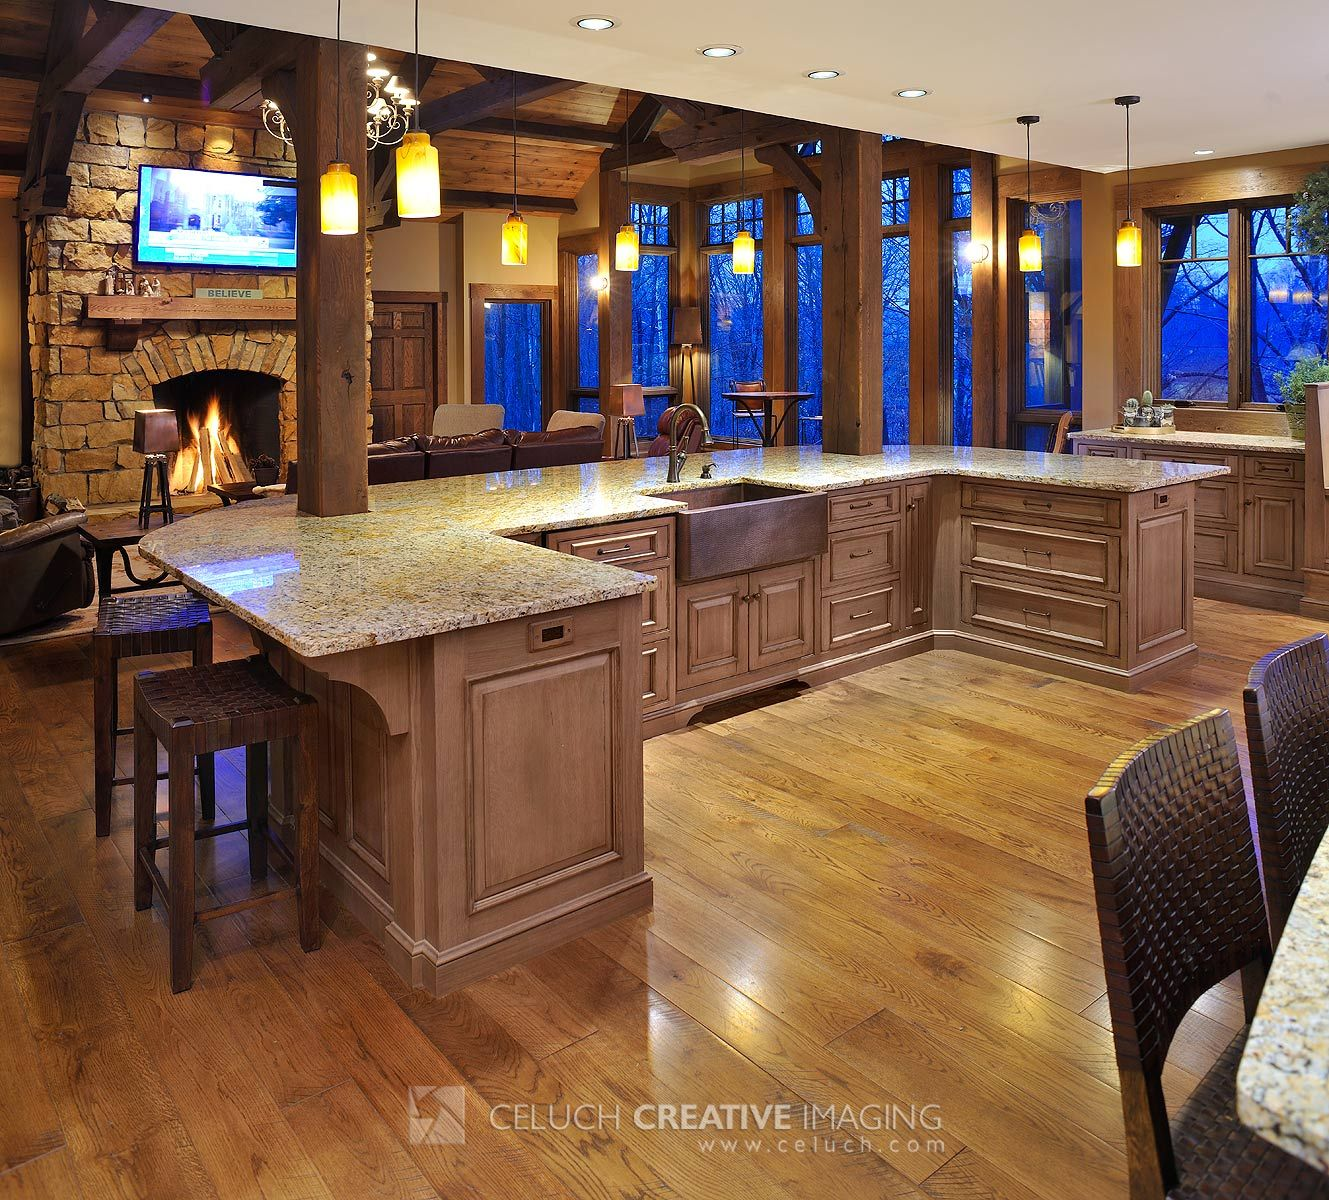 rustic kitchens with islands.  Rustic Mullet Cabinet  Large Rustic Timber Frame Kitchen With Two Islands And  Woodu2026 With Rustic Kitchens Islands